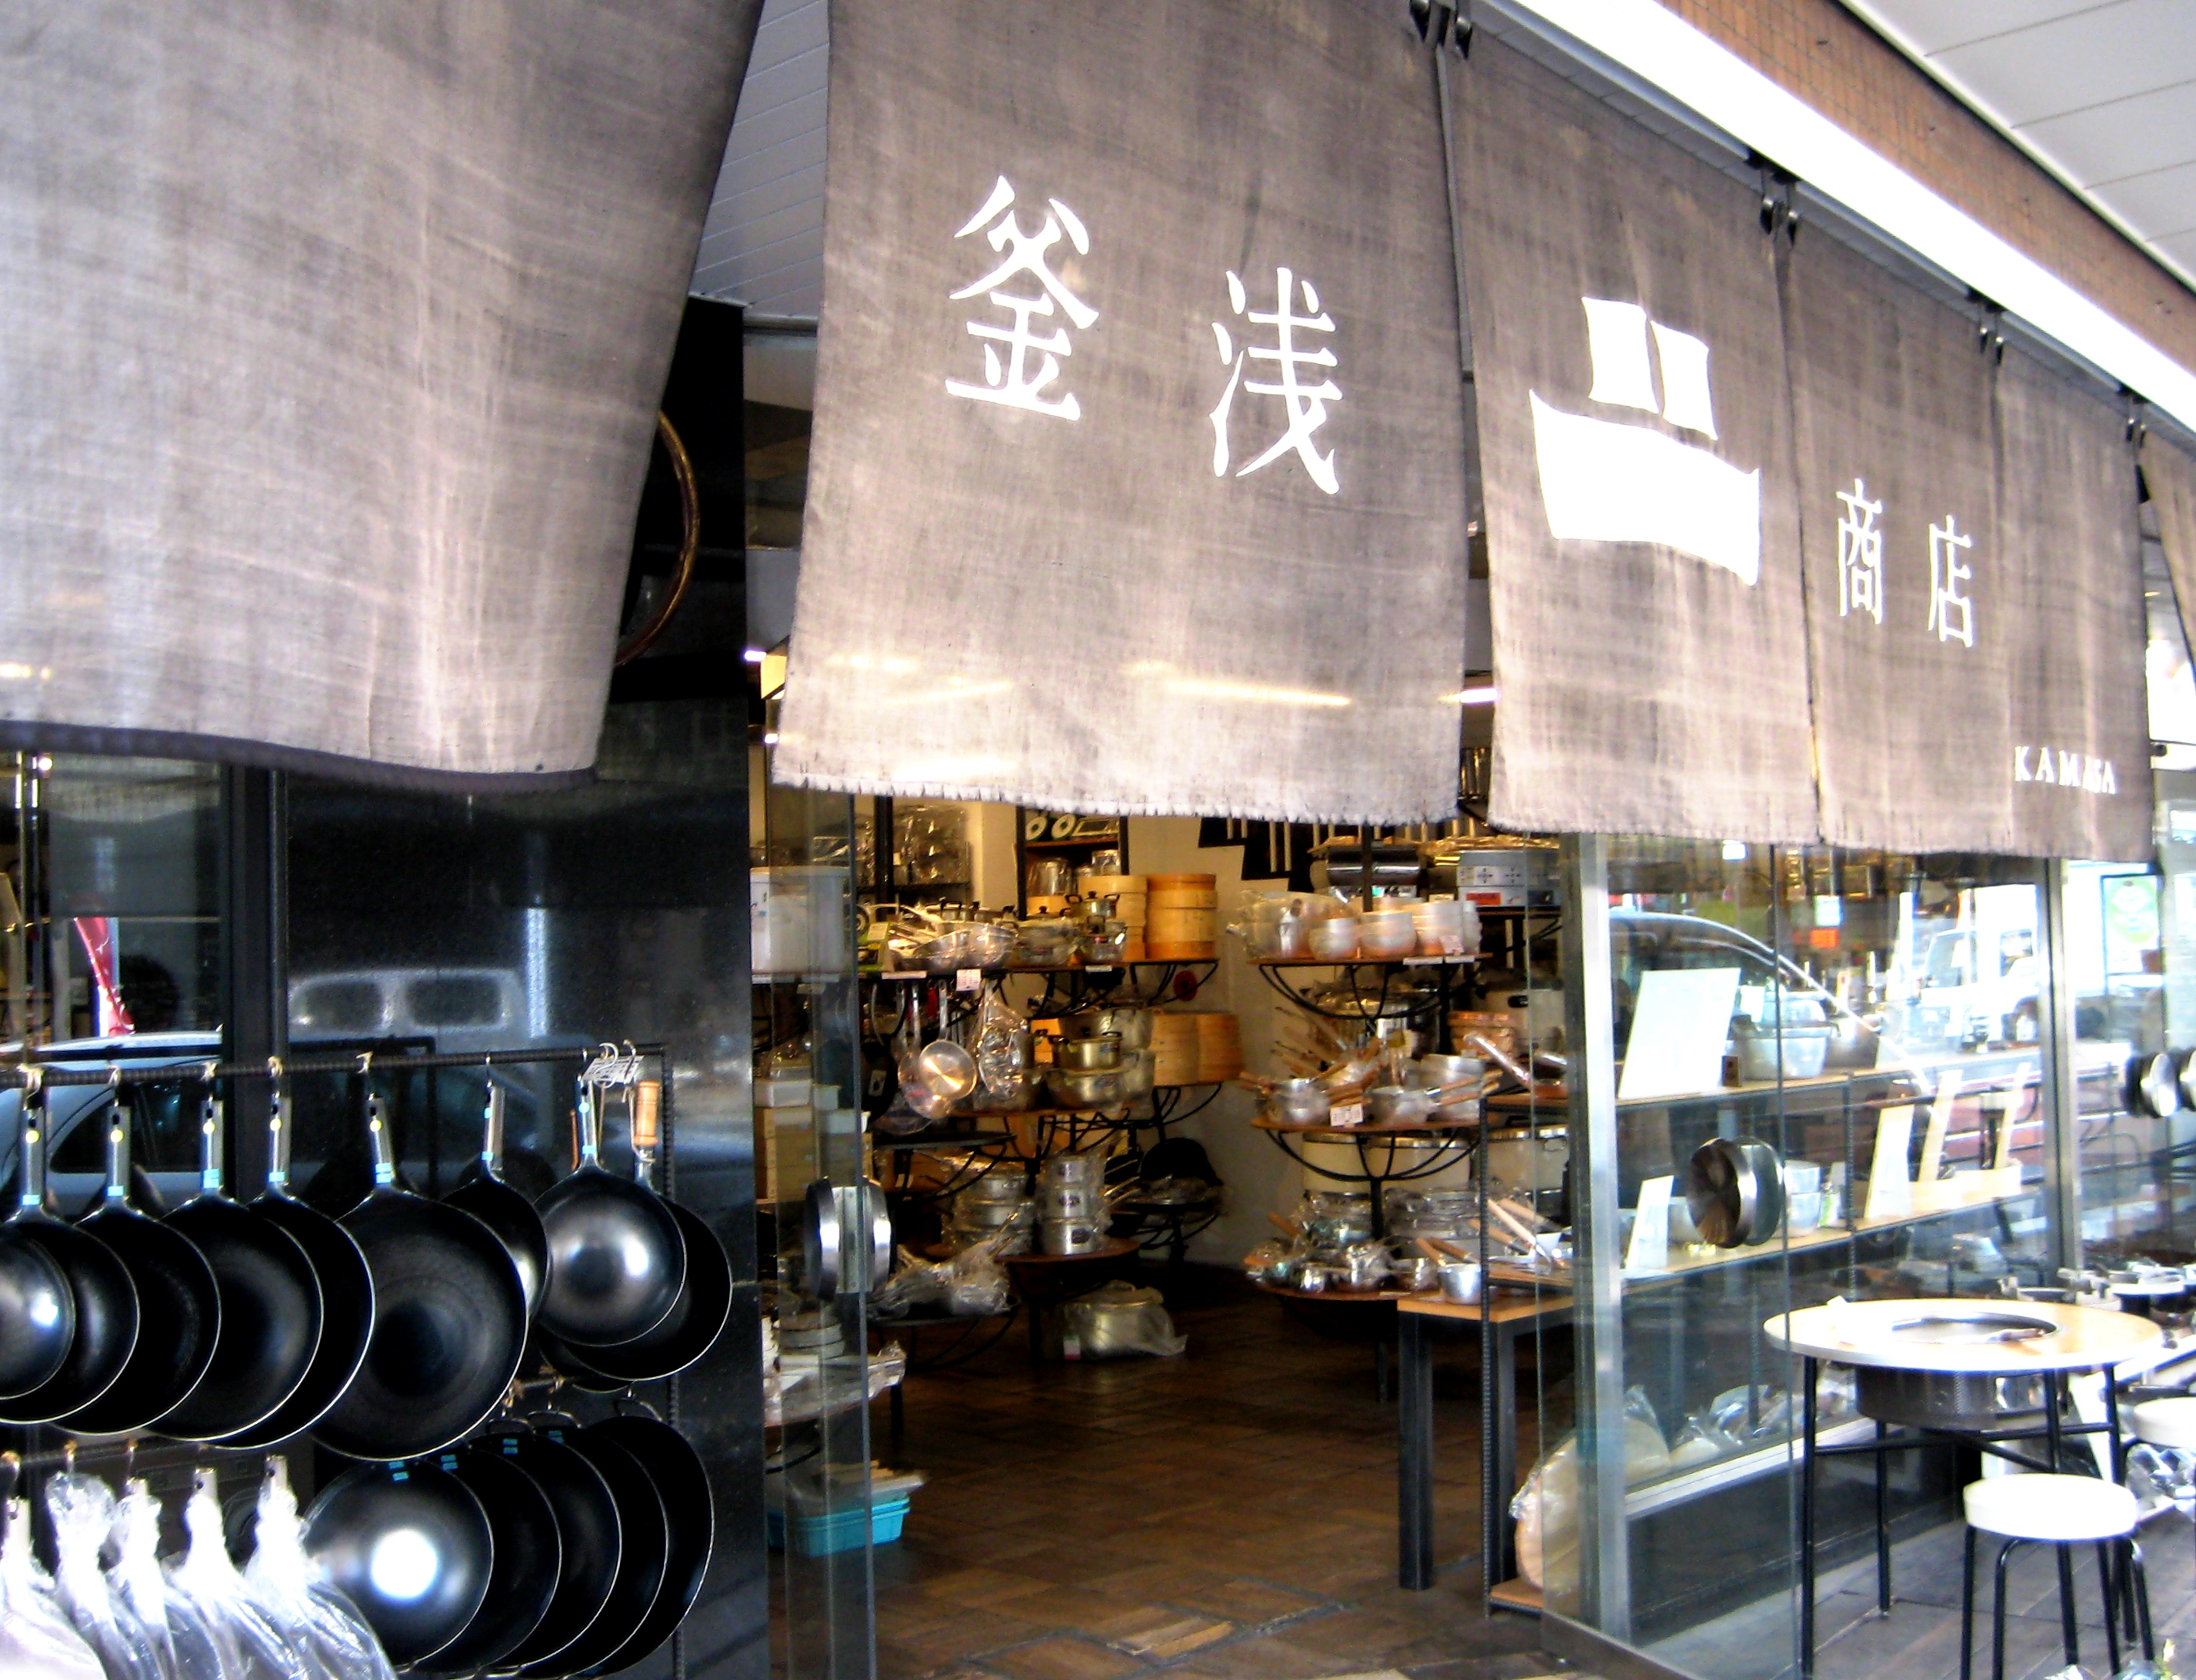 specialty kitchen stores backsplash ideas for small kappabashi tool street best place to find tools deepjapan there are many kitchenware tableware signboards and furniture restaurants